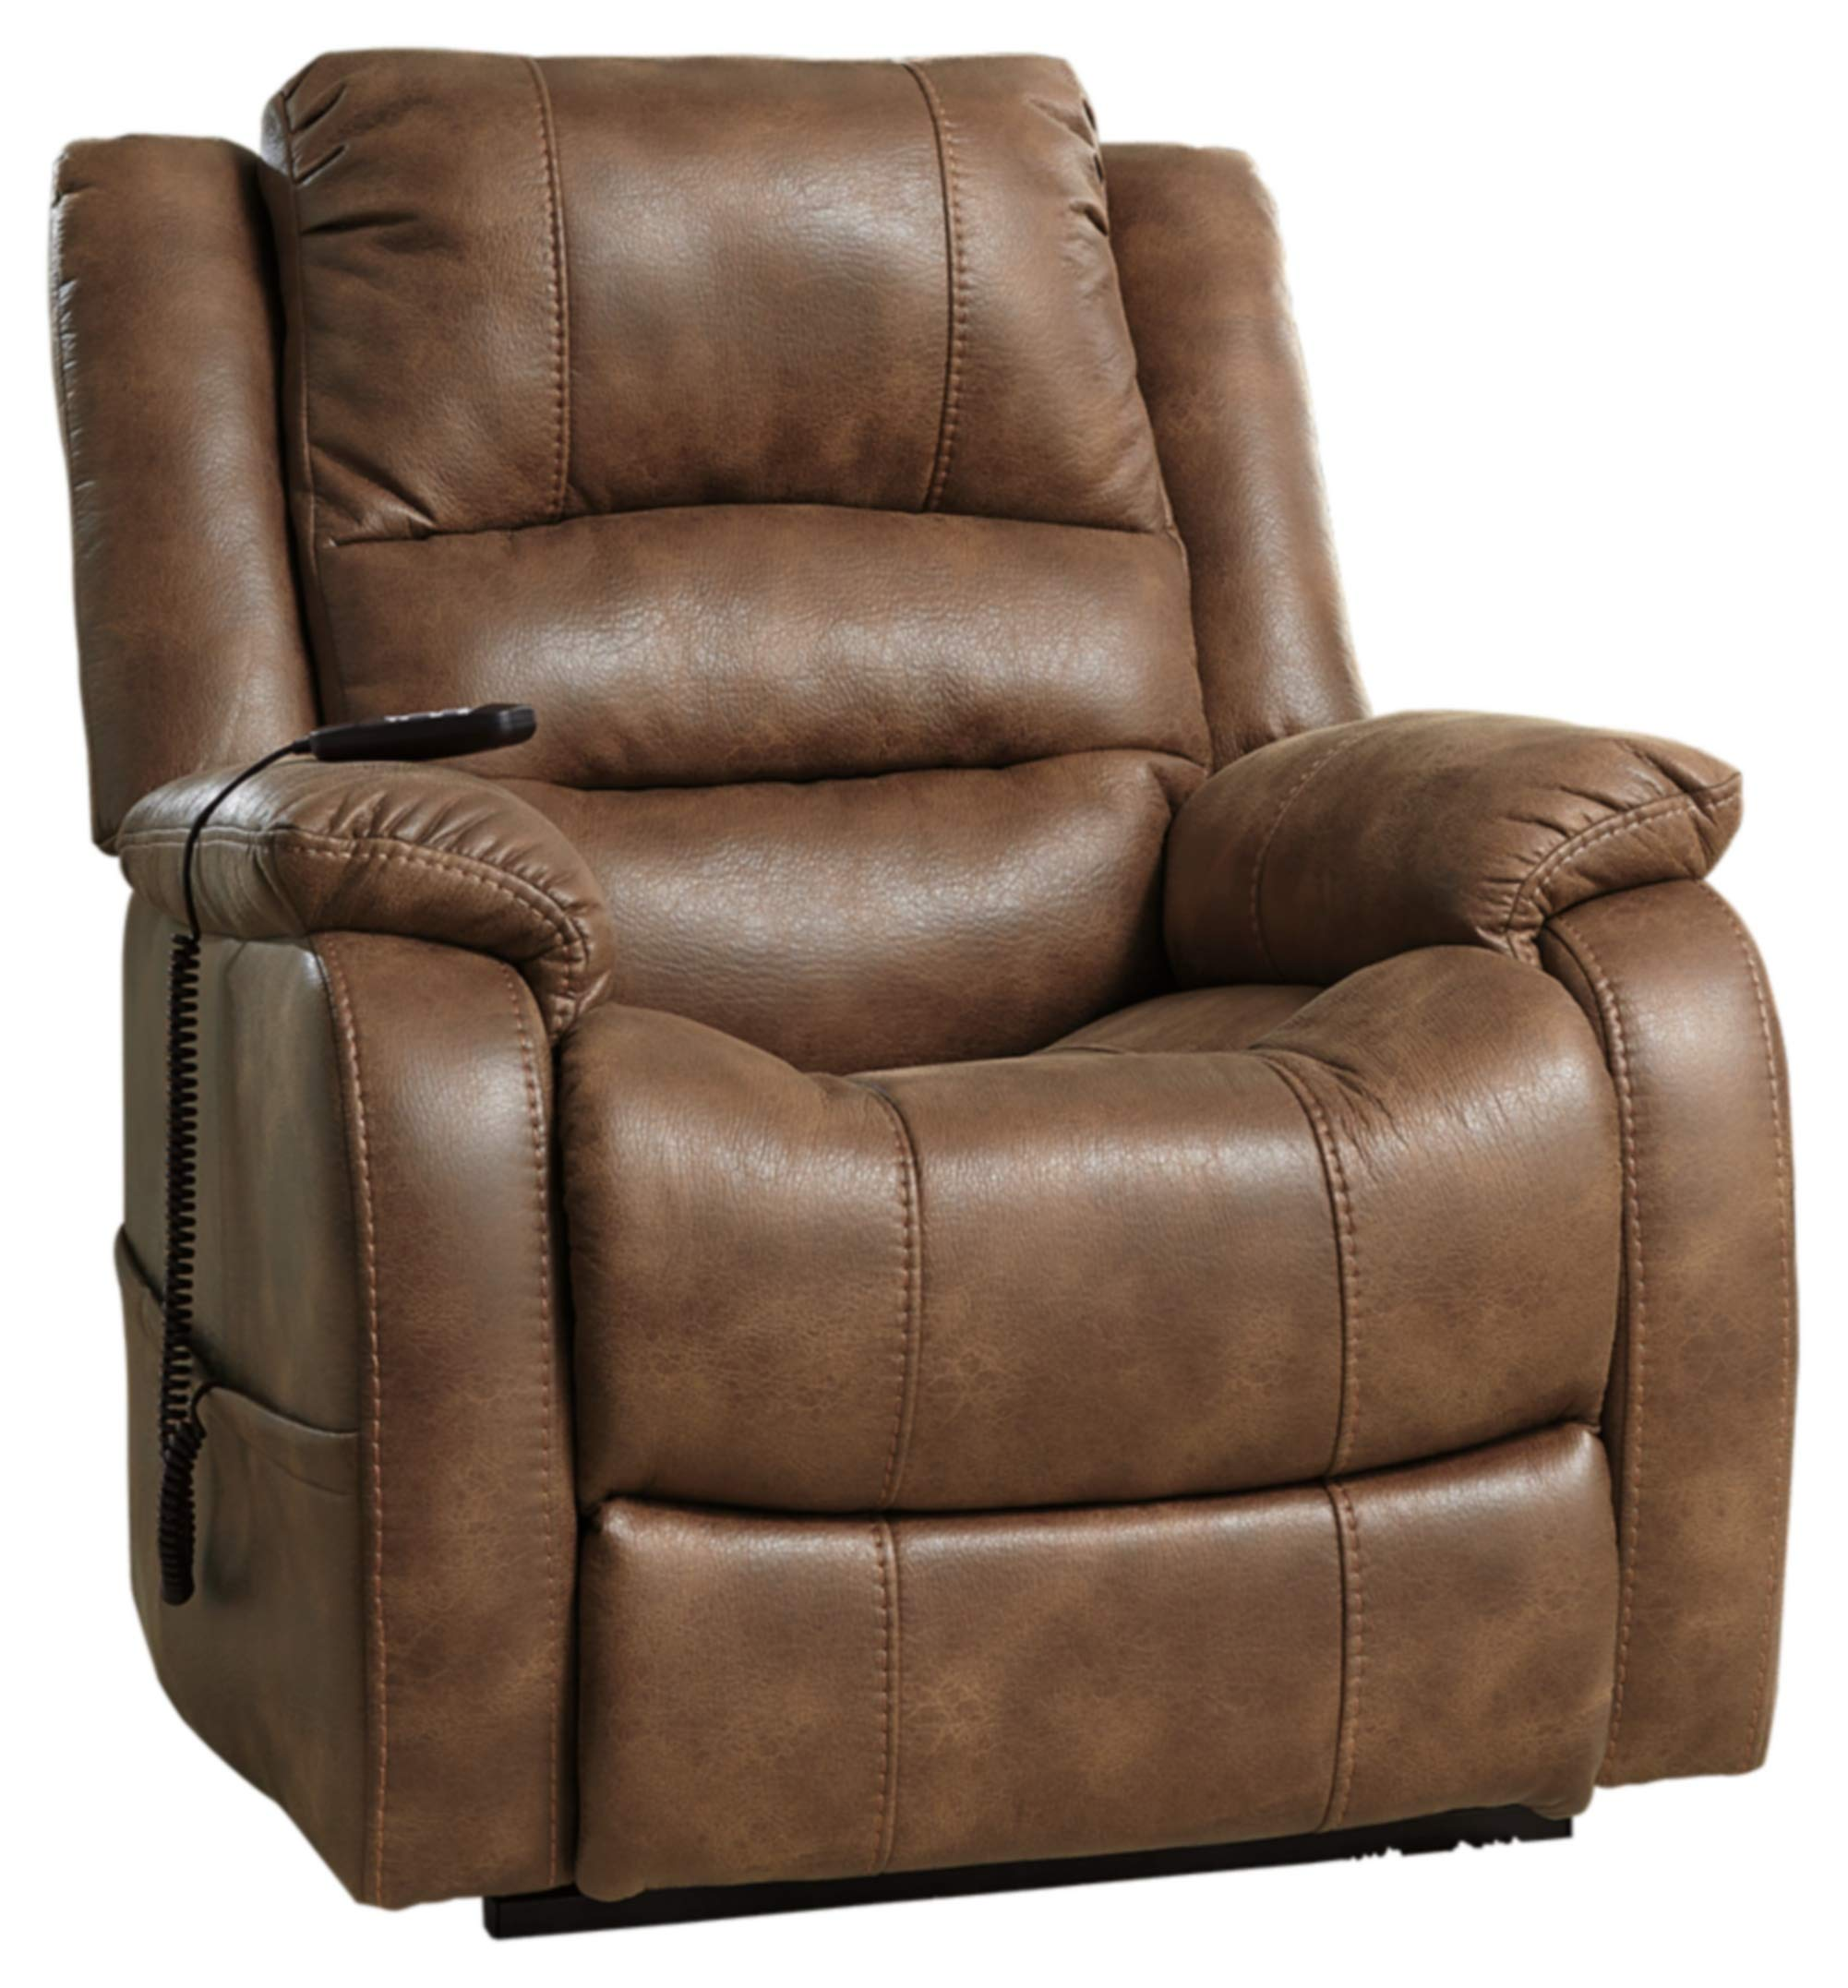 Ashley Furniture Signature Design - Yandel Power Lift Recliner - Contemporary Reclining - Faux Leather Upholstery - Saddle by Signature Design by Ashley